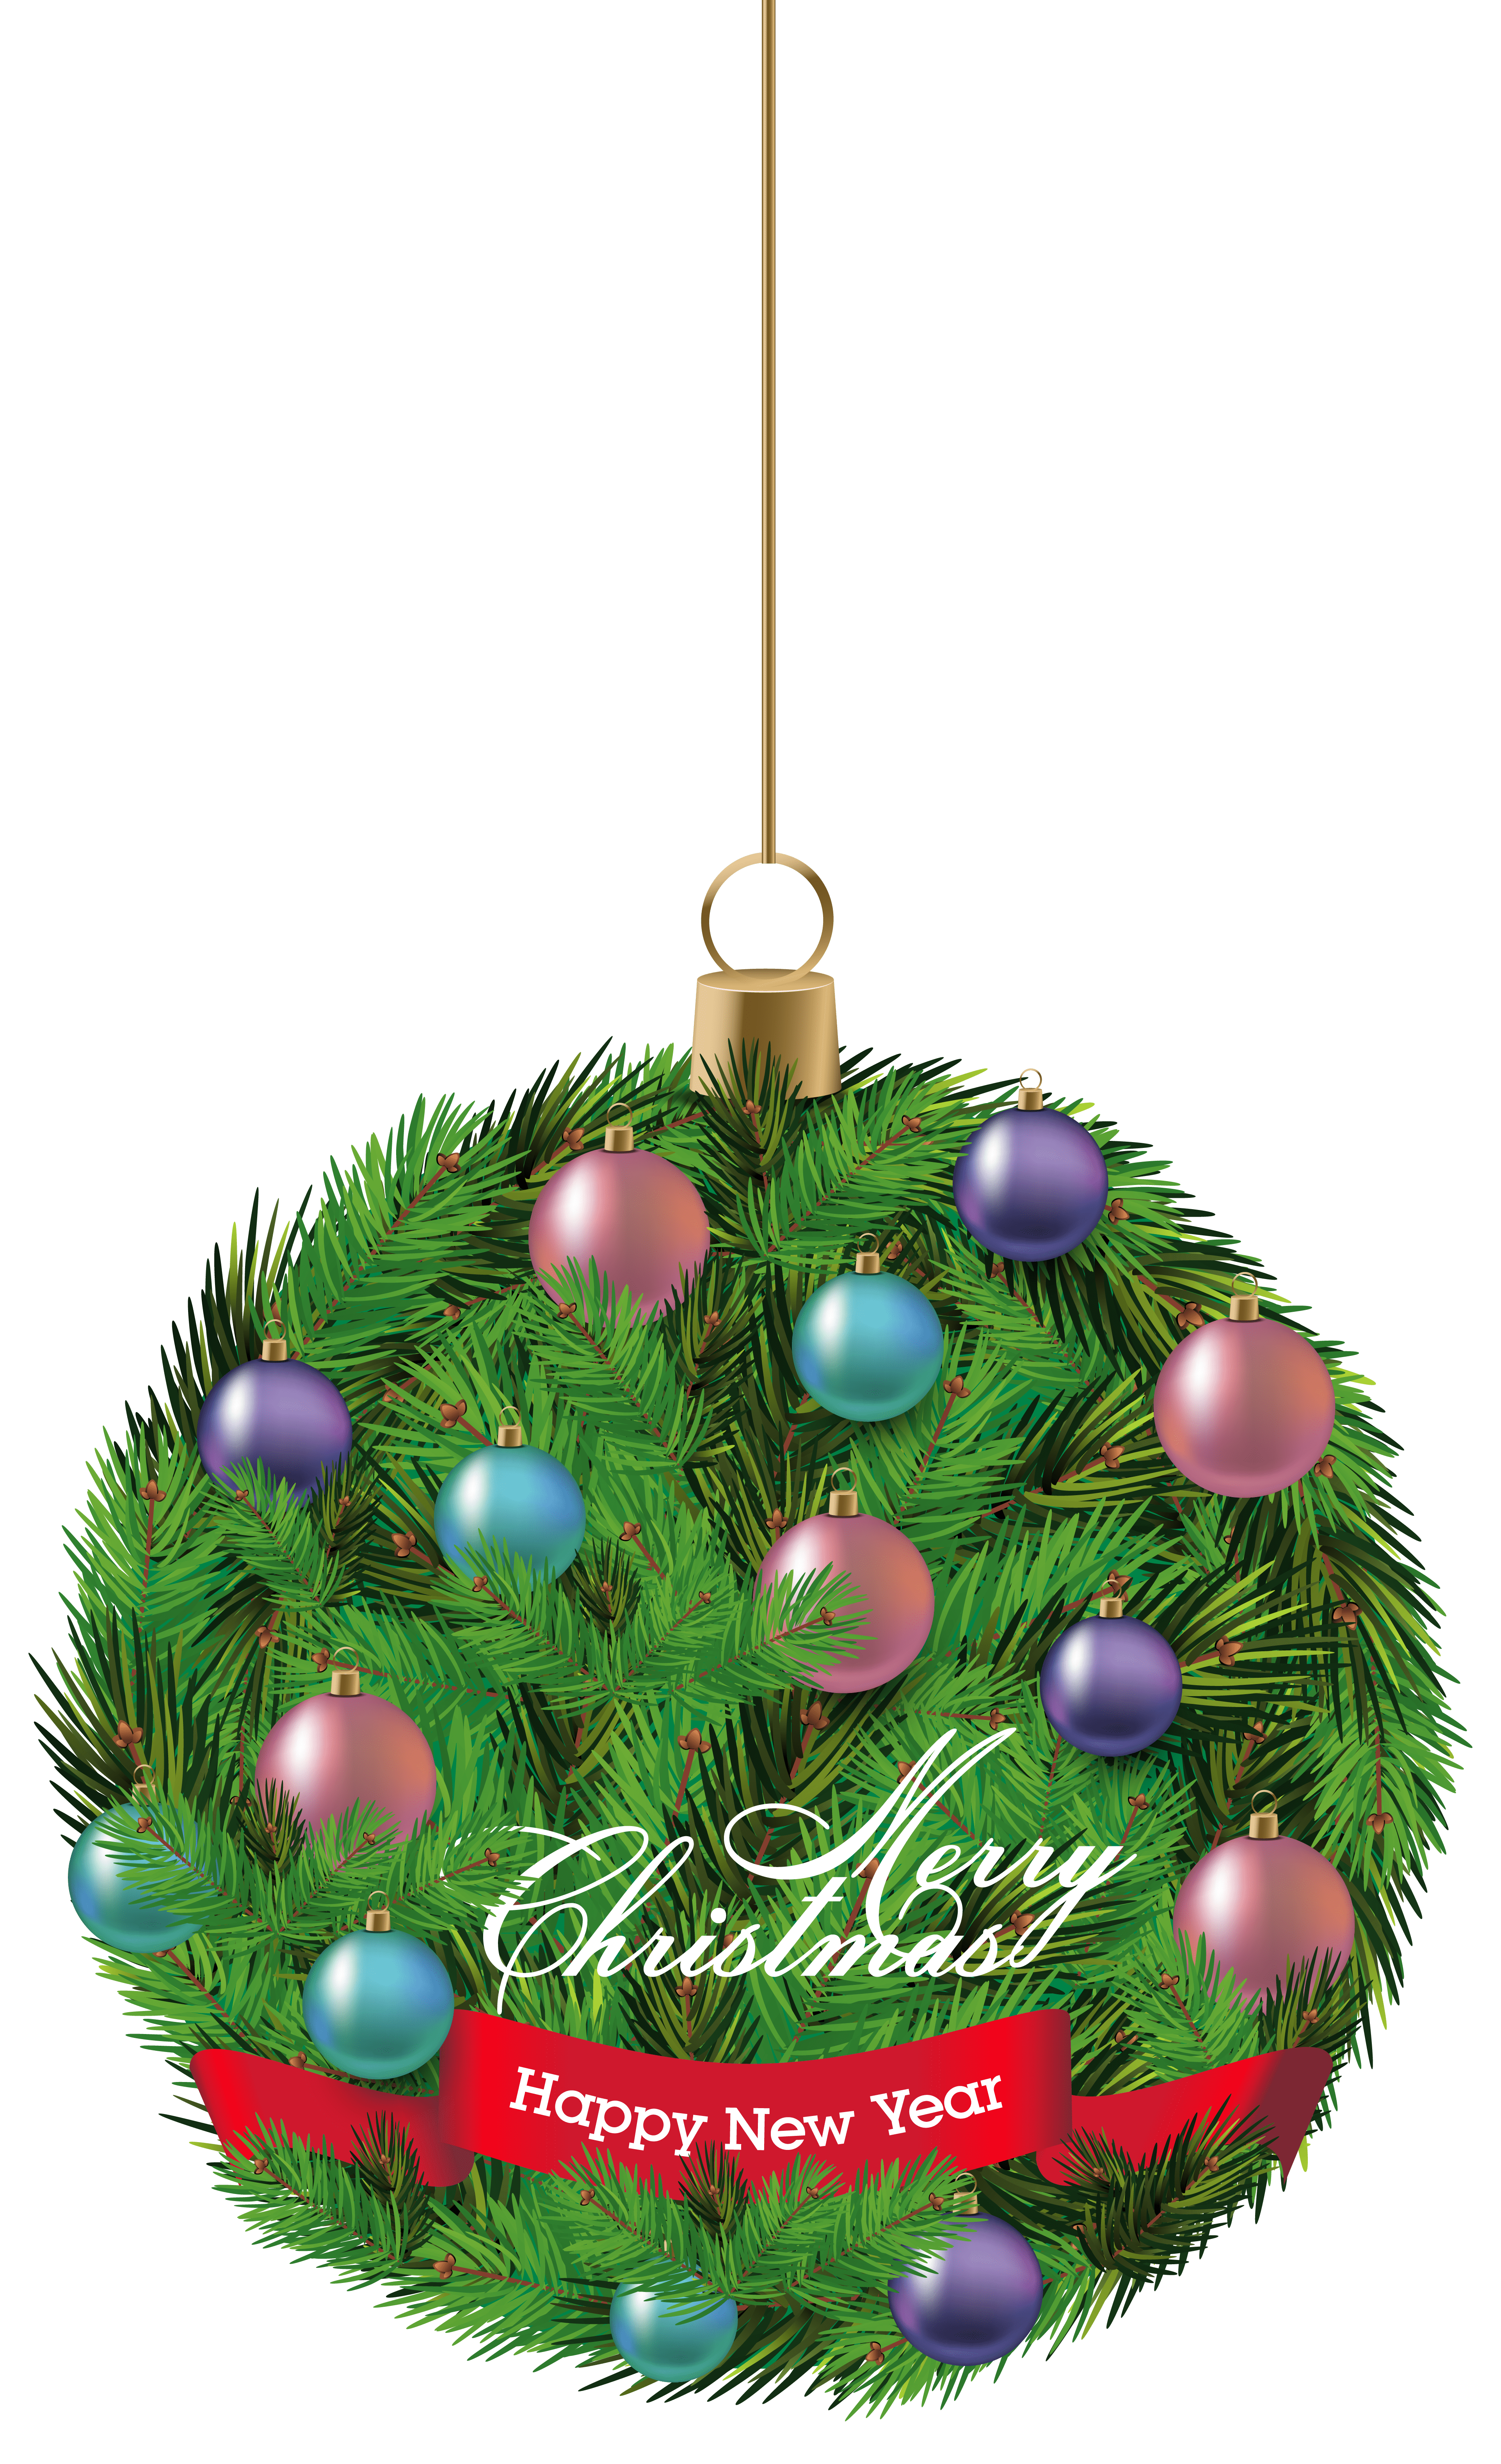 Pine Hanging Christmas Ornament Png Clipart Image